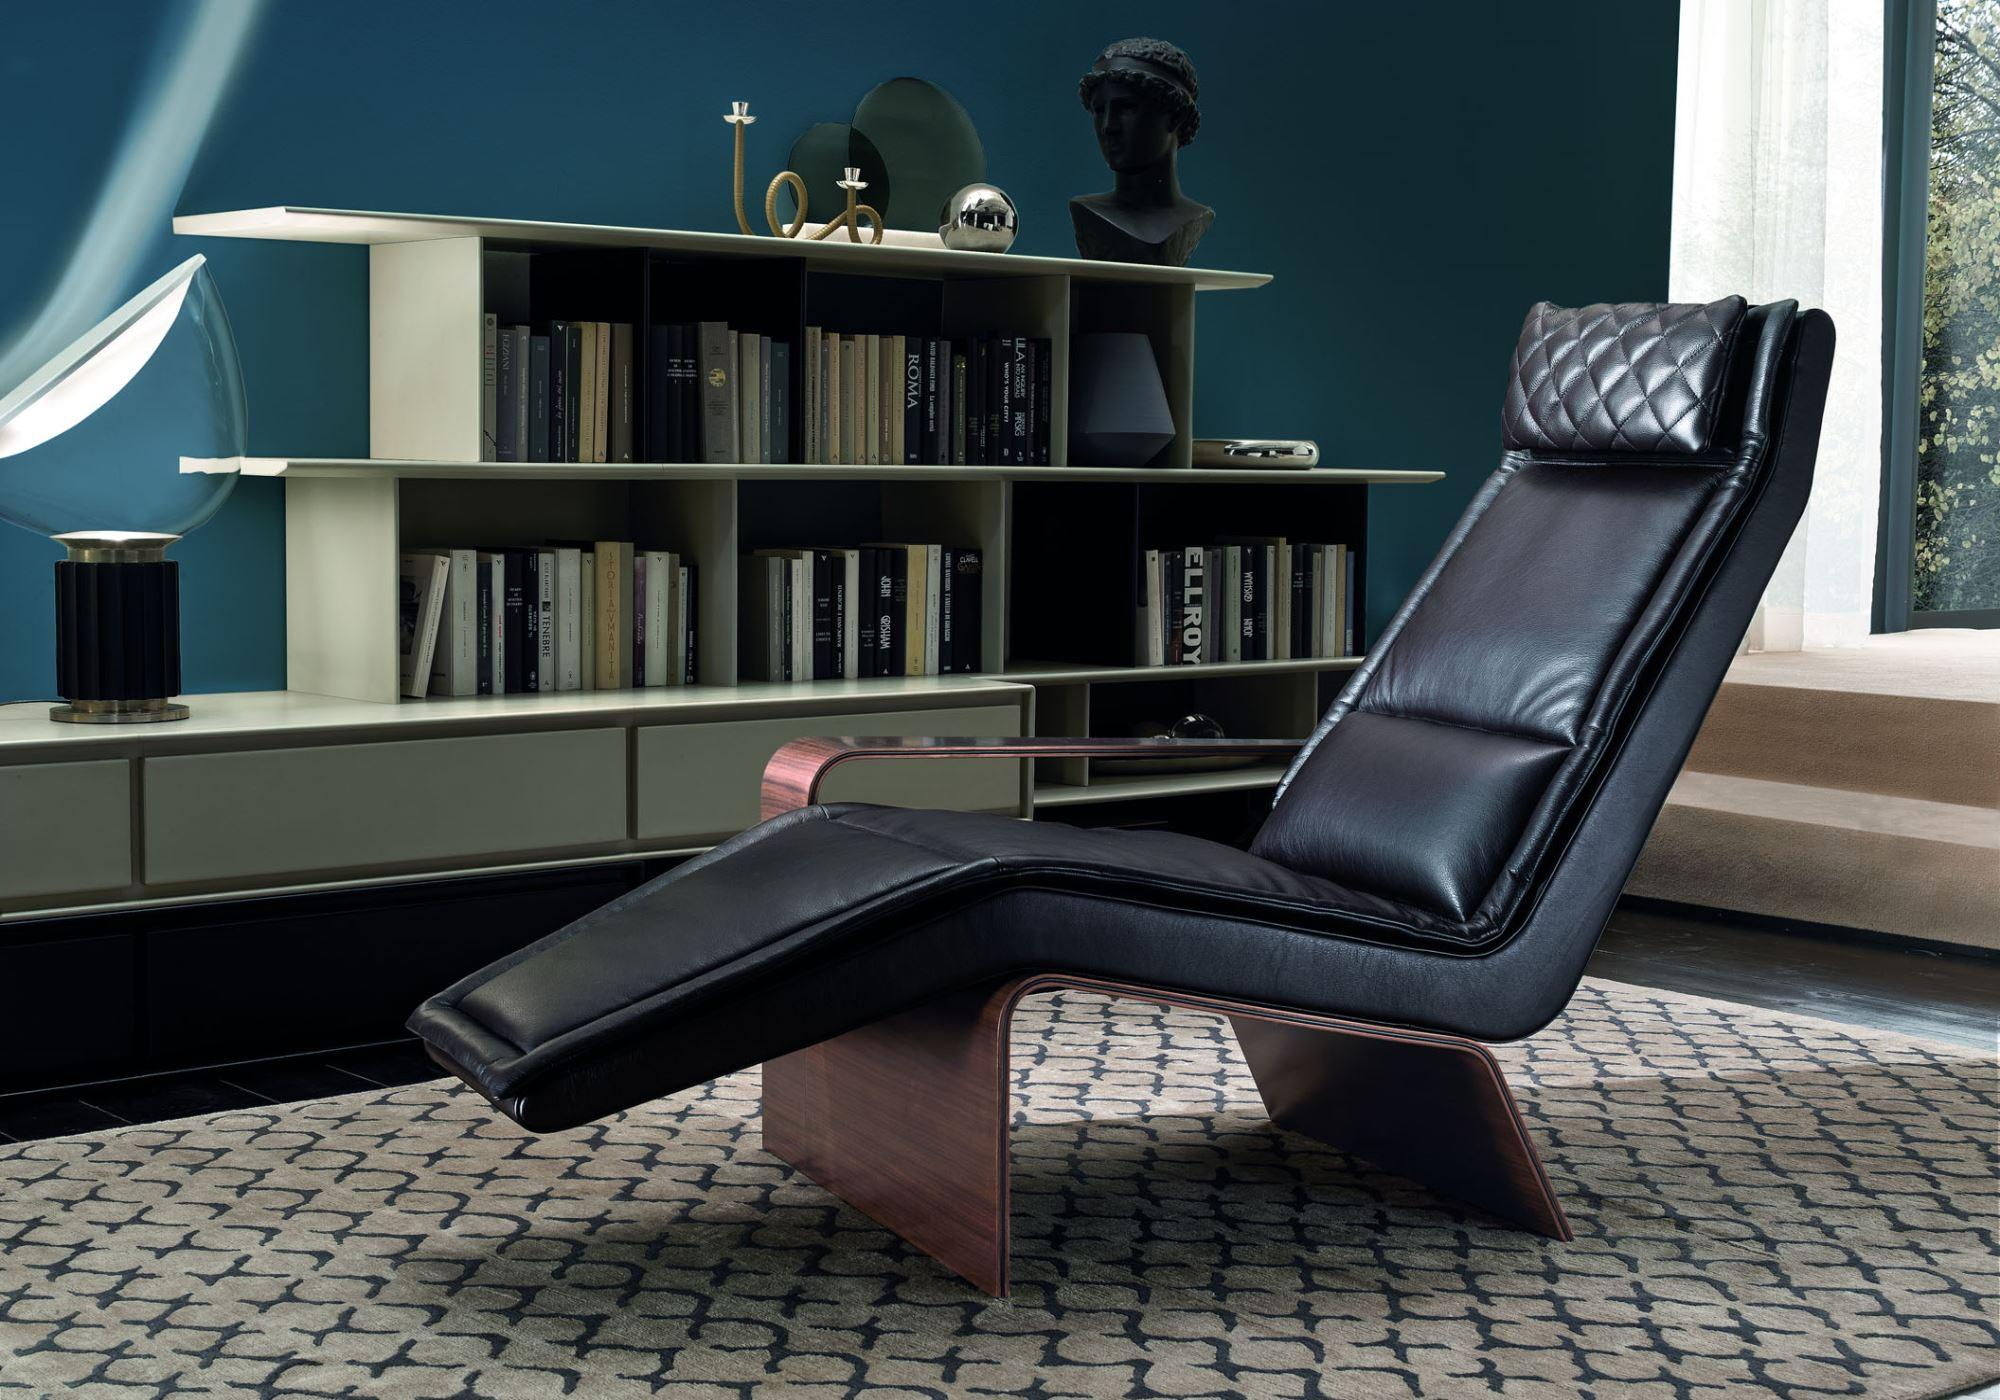 ala upholstered chaise longue chair shop online italy. Black Bedroom Furniture Sets. Home Design Ideas